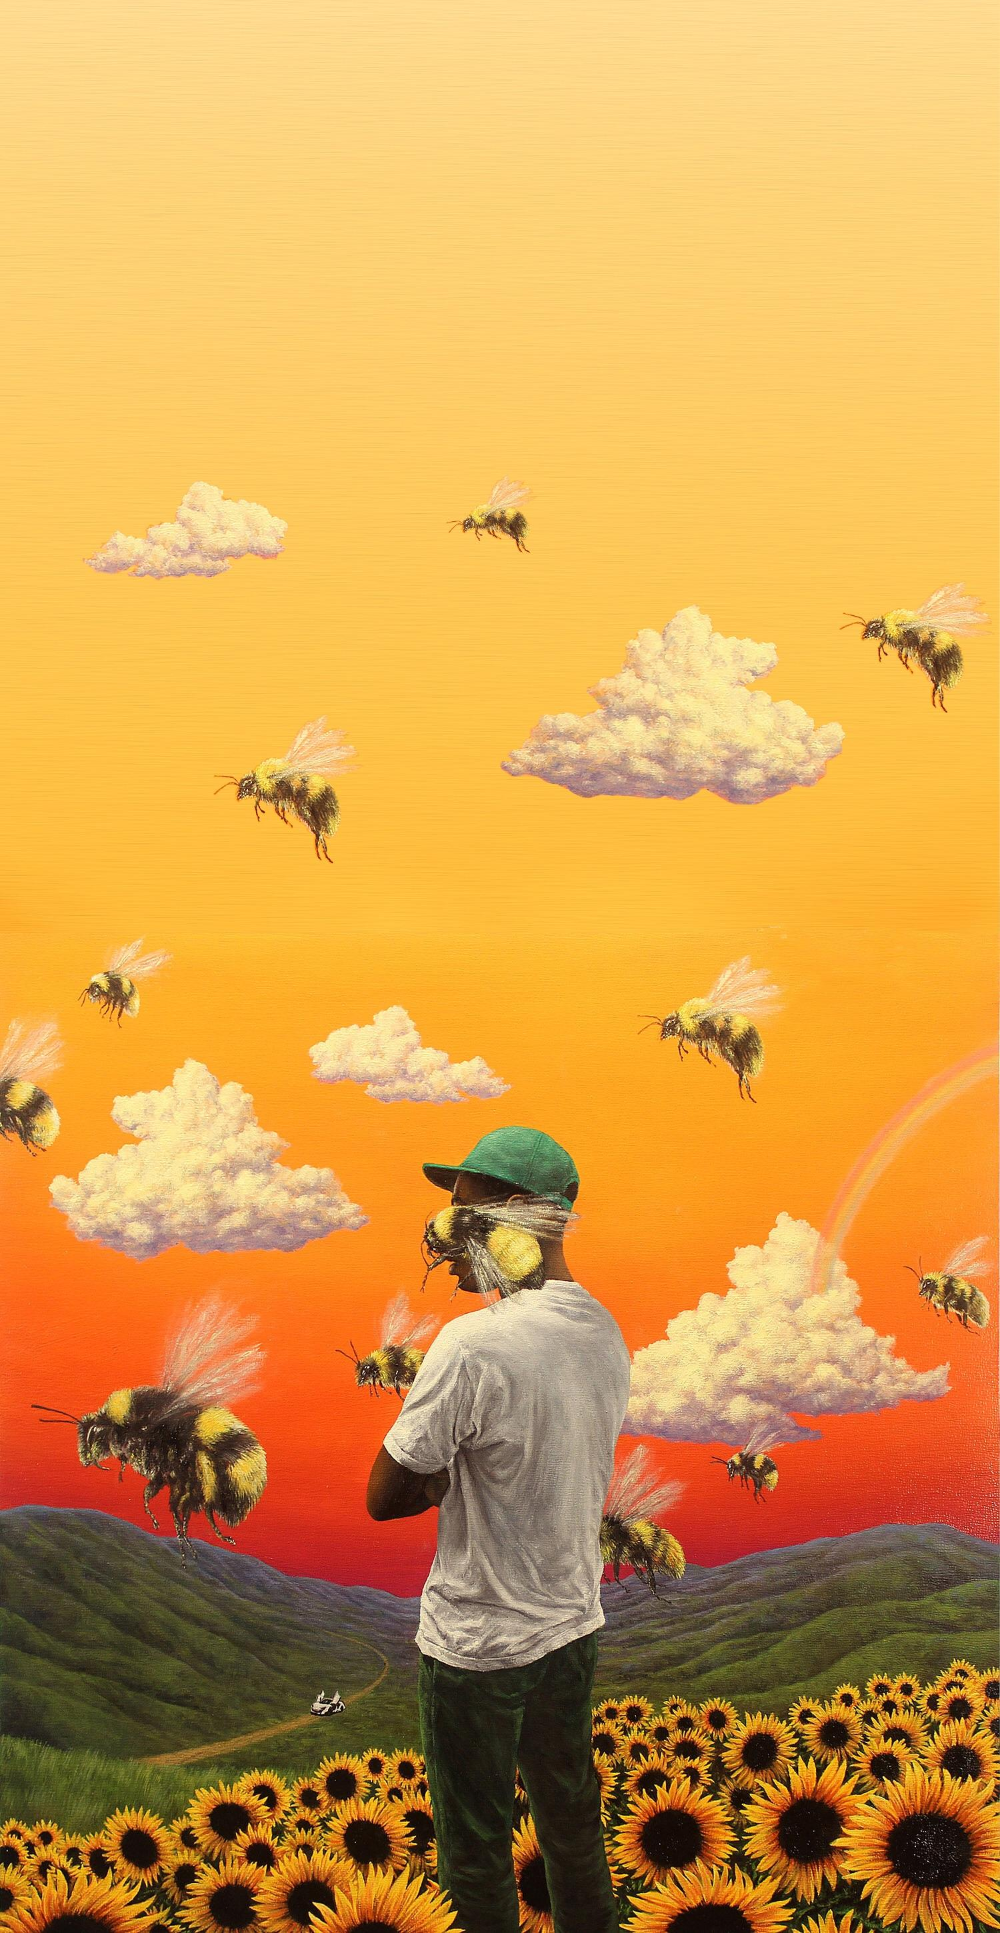 High Res Flower Boy Wallpaper So Tyler The Creator Wallpaper Future Wallpaper Picture Collage Wall